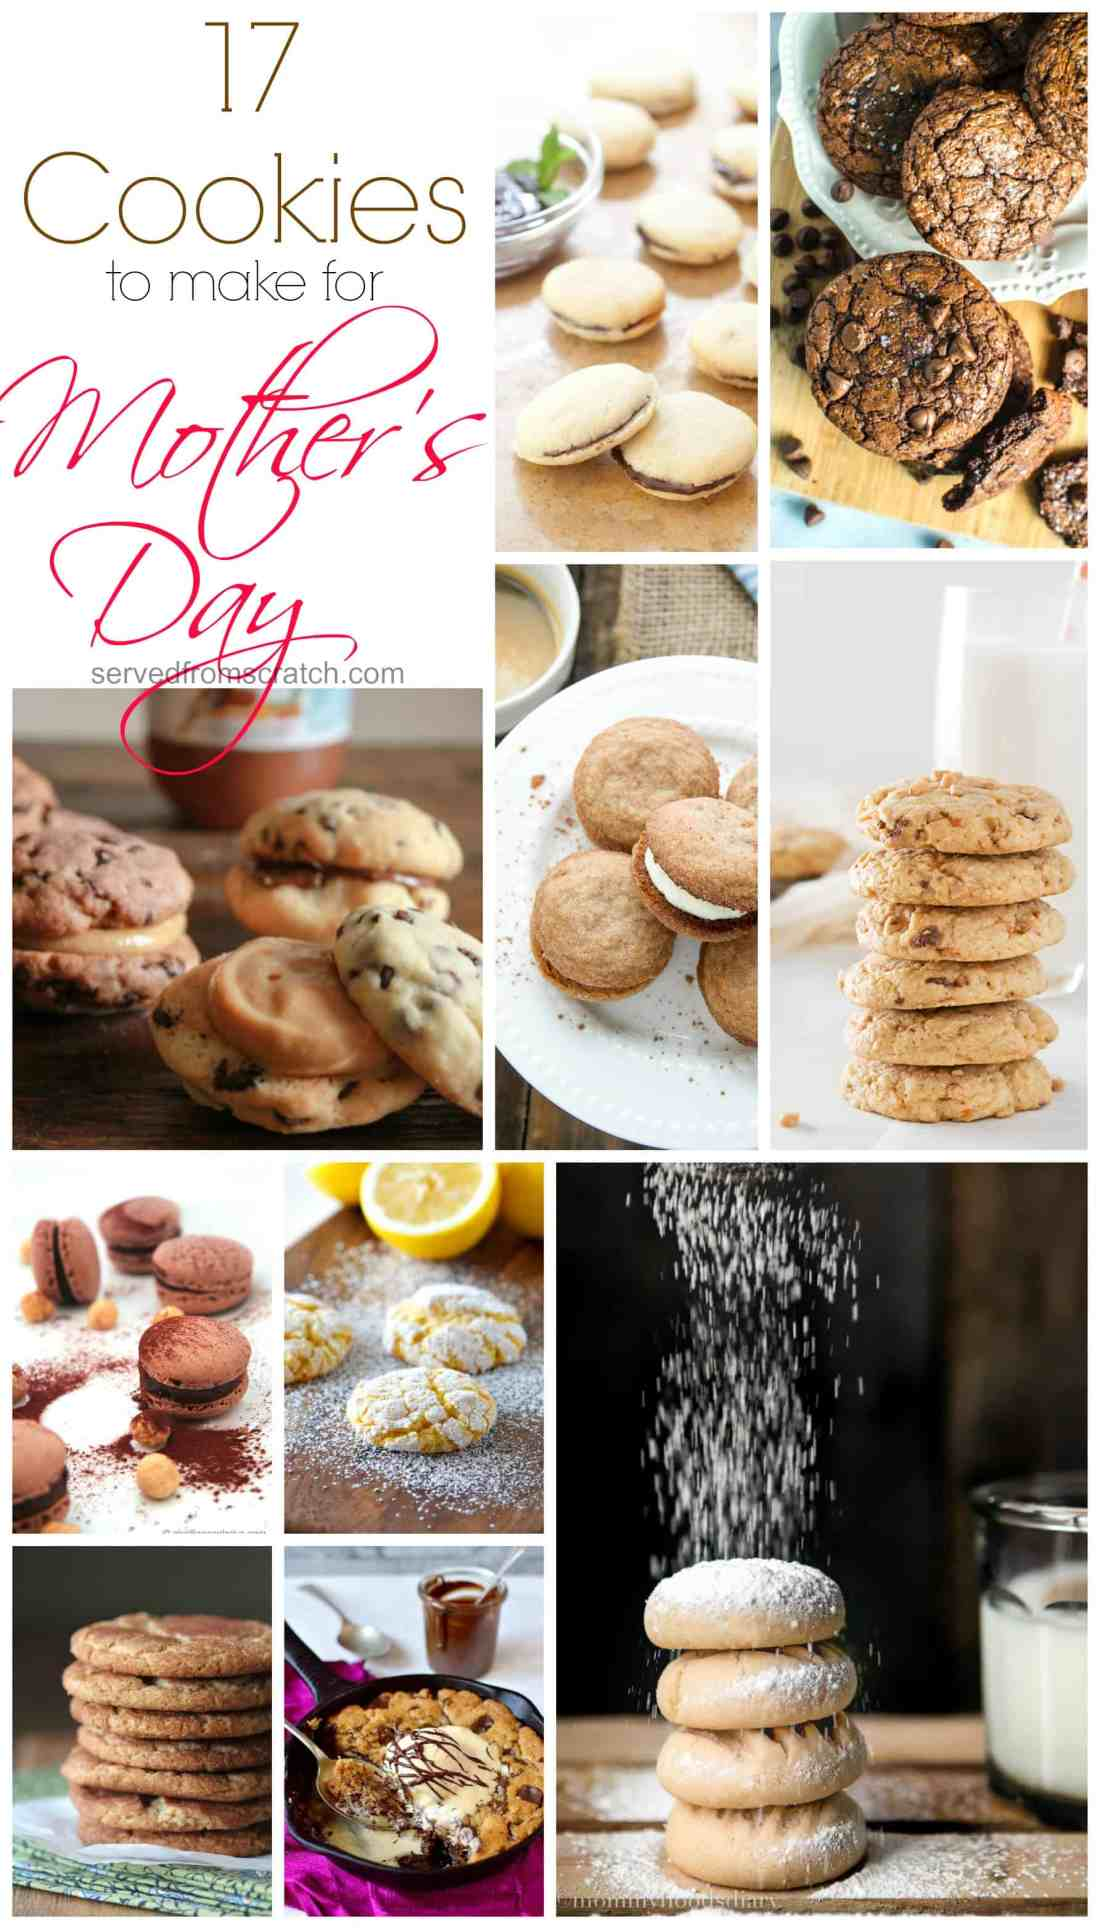 Treat your mama right on Mother's Day with any of these amazing cookies!